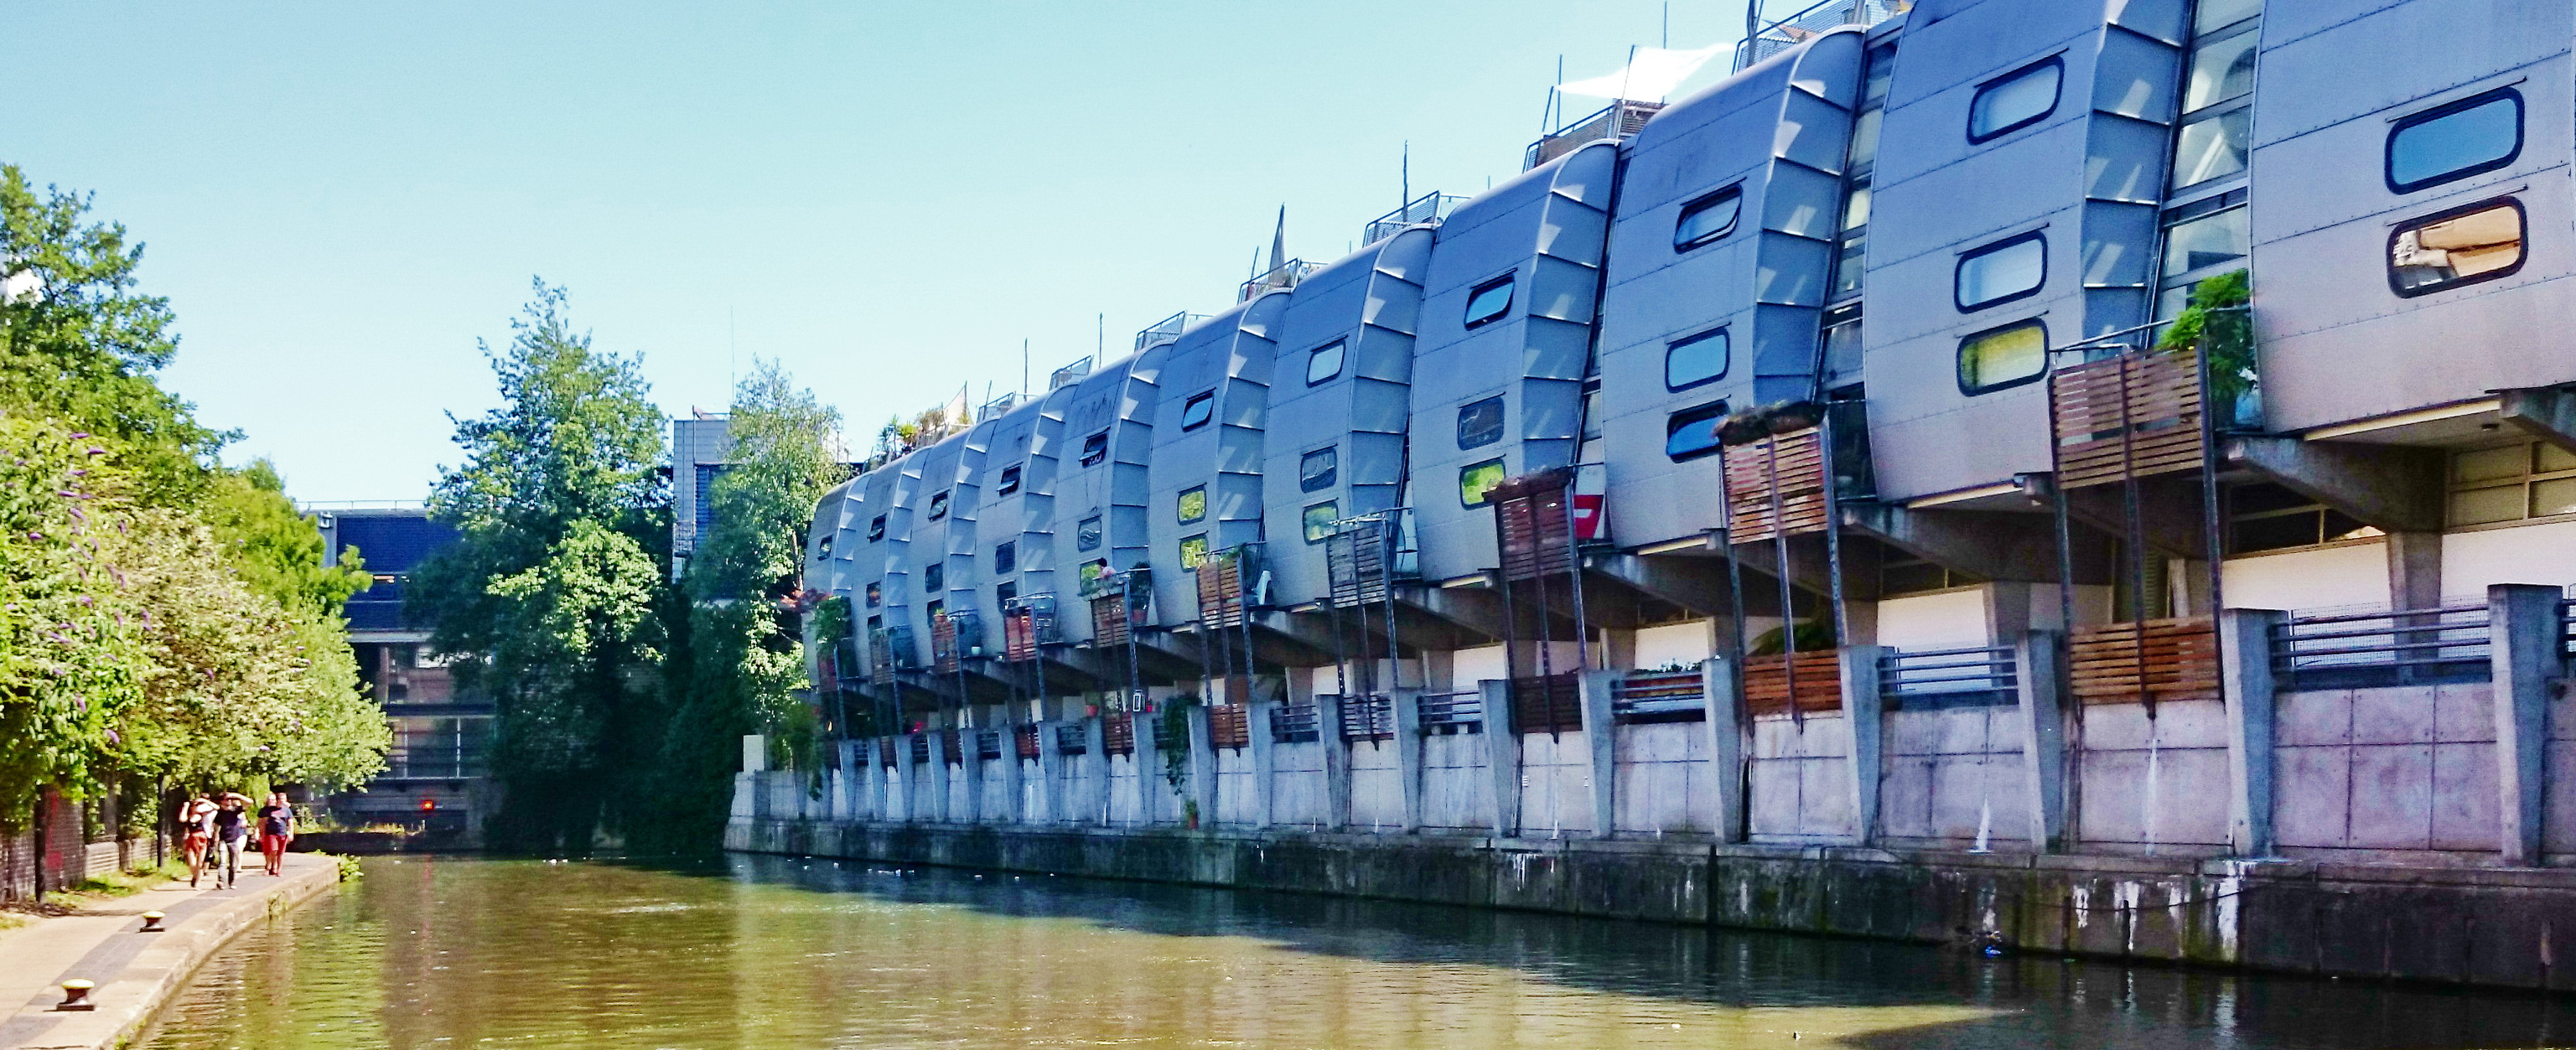 London Walk Tip: Regent Canal from Central St. Martins to Camden